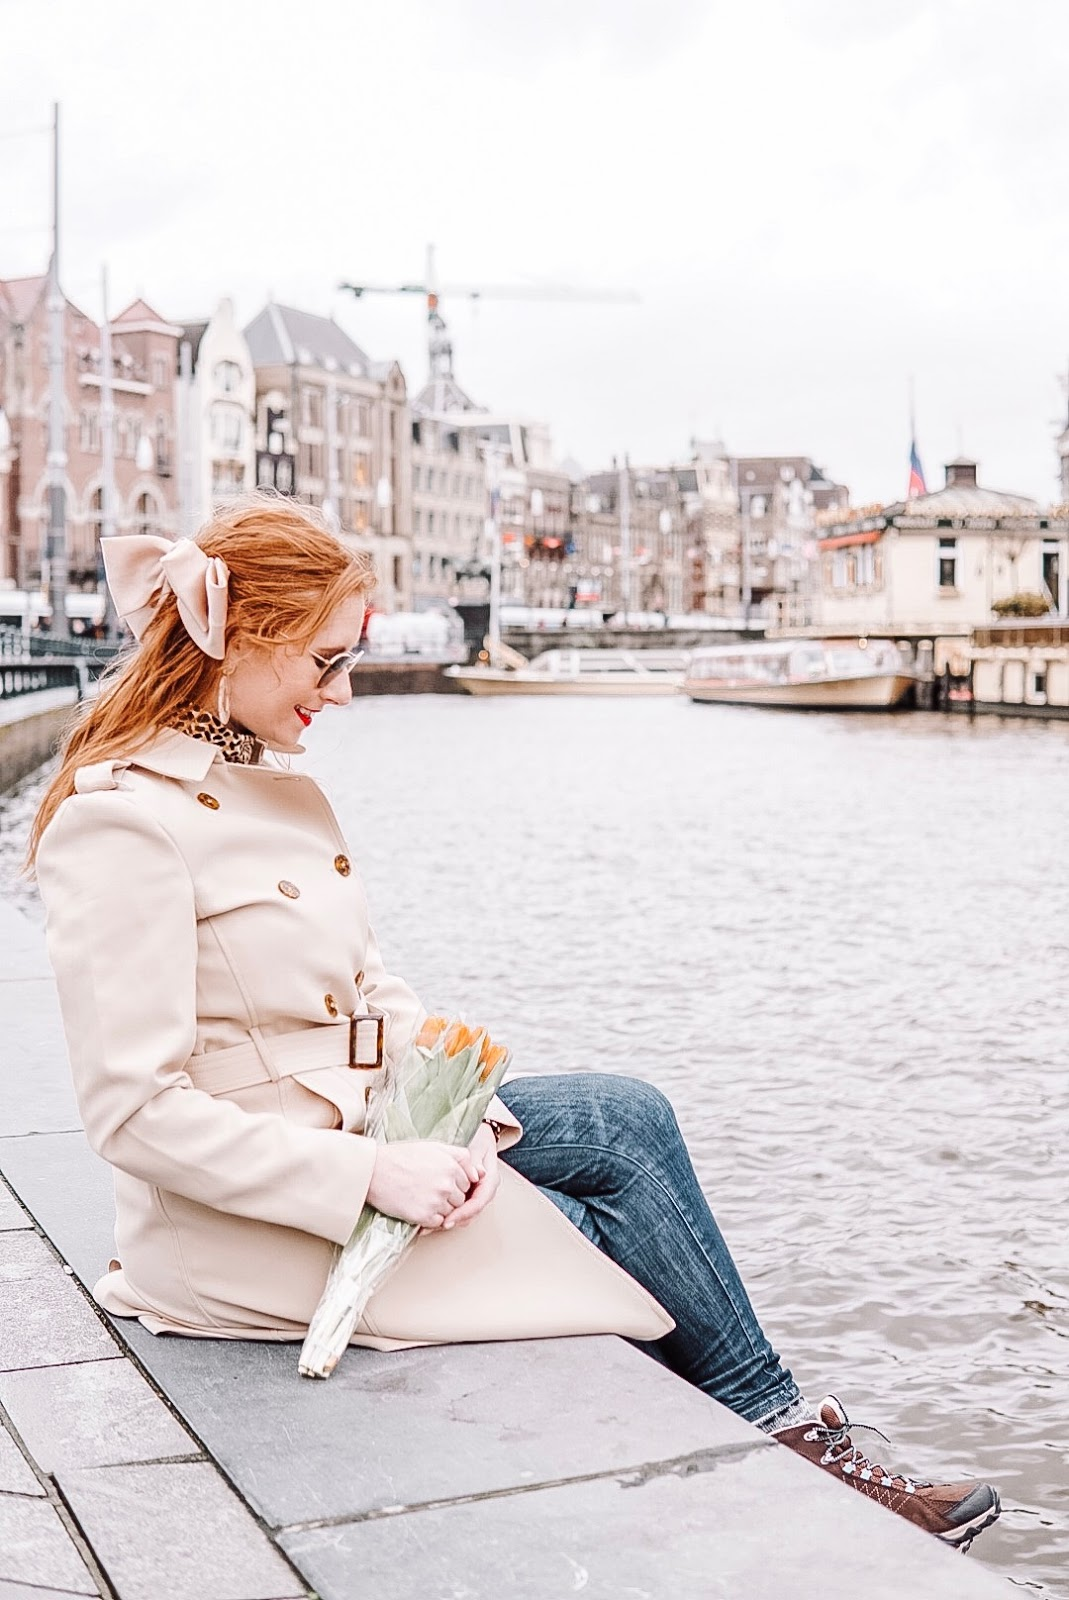 tampa blogger amanda burrows is in amsterdam. she is sitting along the canal. she is wearing a tan trench coat and holding orange tulips.